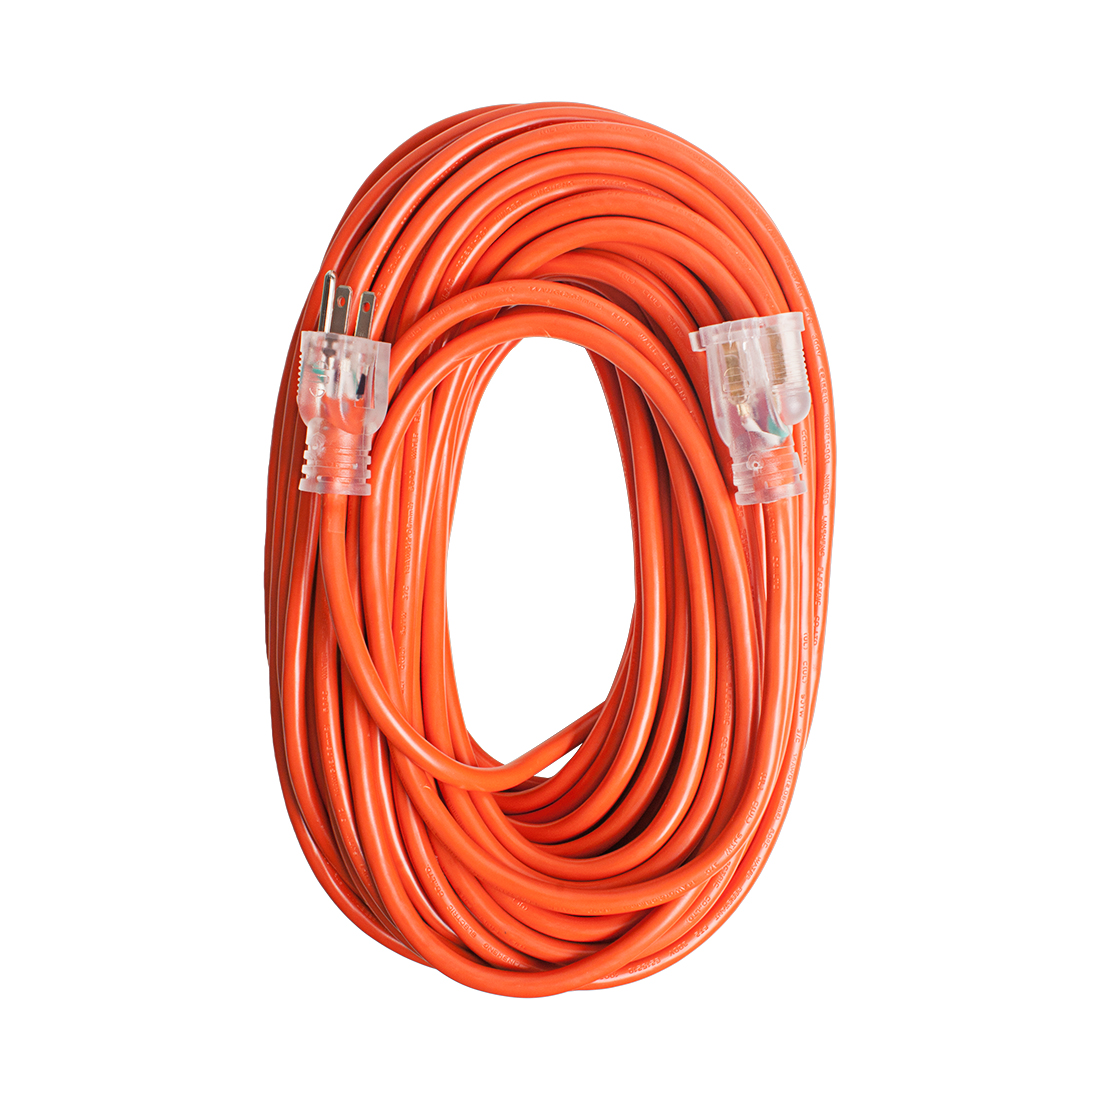 US Plug Outdoor Heavy-Duty 15A 14AWG SJTW 100Ft Lighted Power Extension Cord Cable Orange